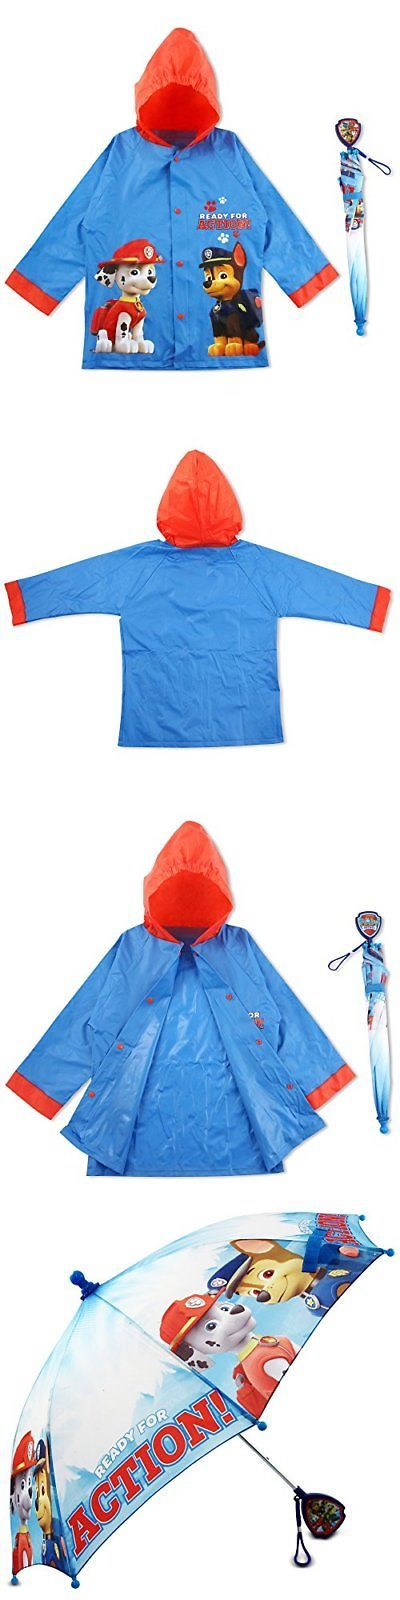 Umbrellas 122341: Nickelodeon Paw Patrol Character Slicker And Umbrella Rainwear Set, Blue, Age -> BUY IT NOW ONLY: $36.5 on eBay!